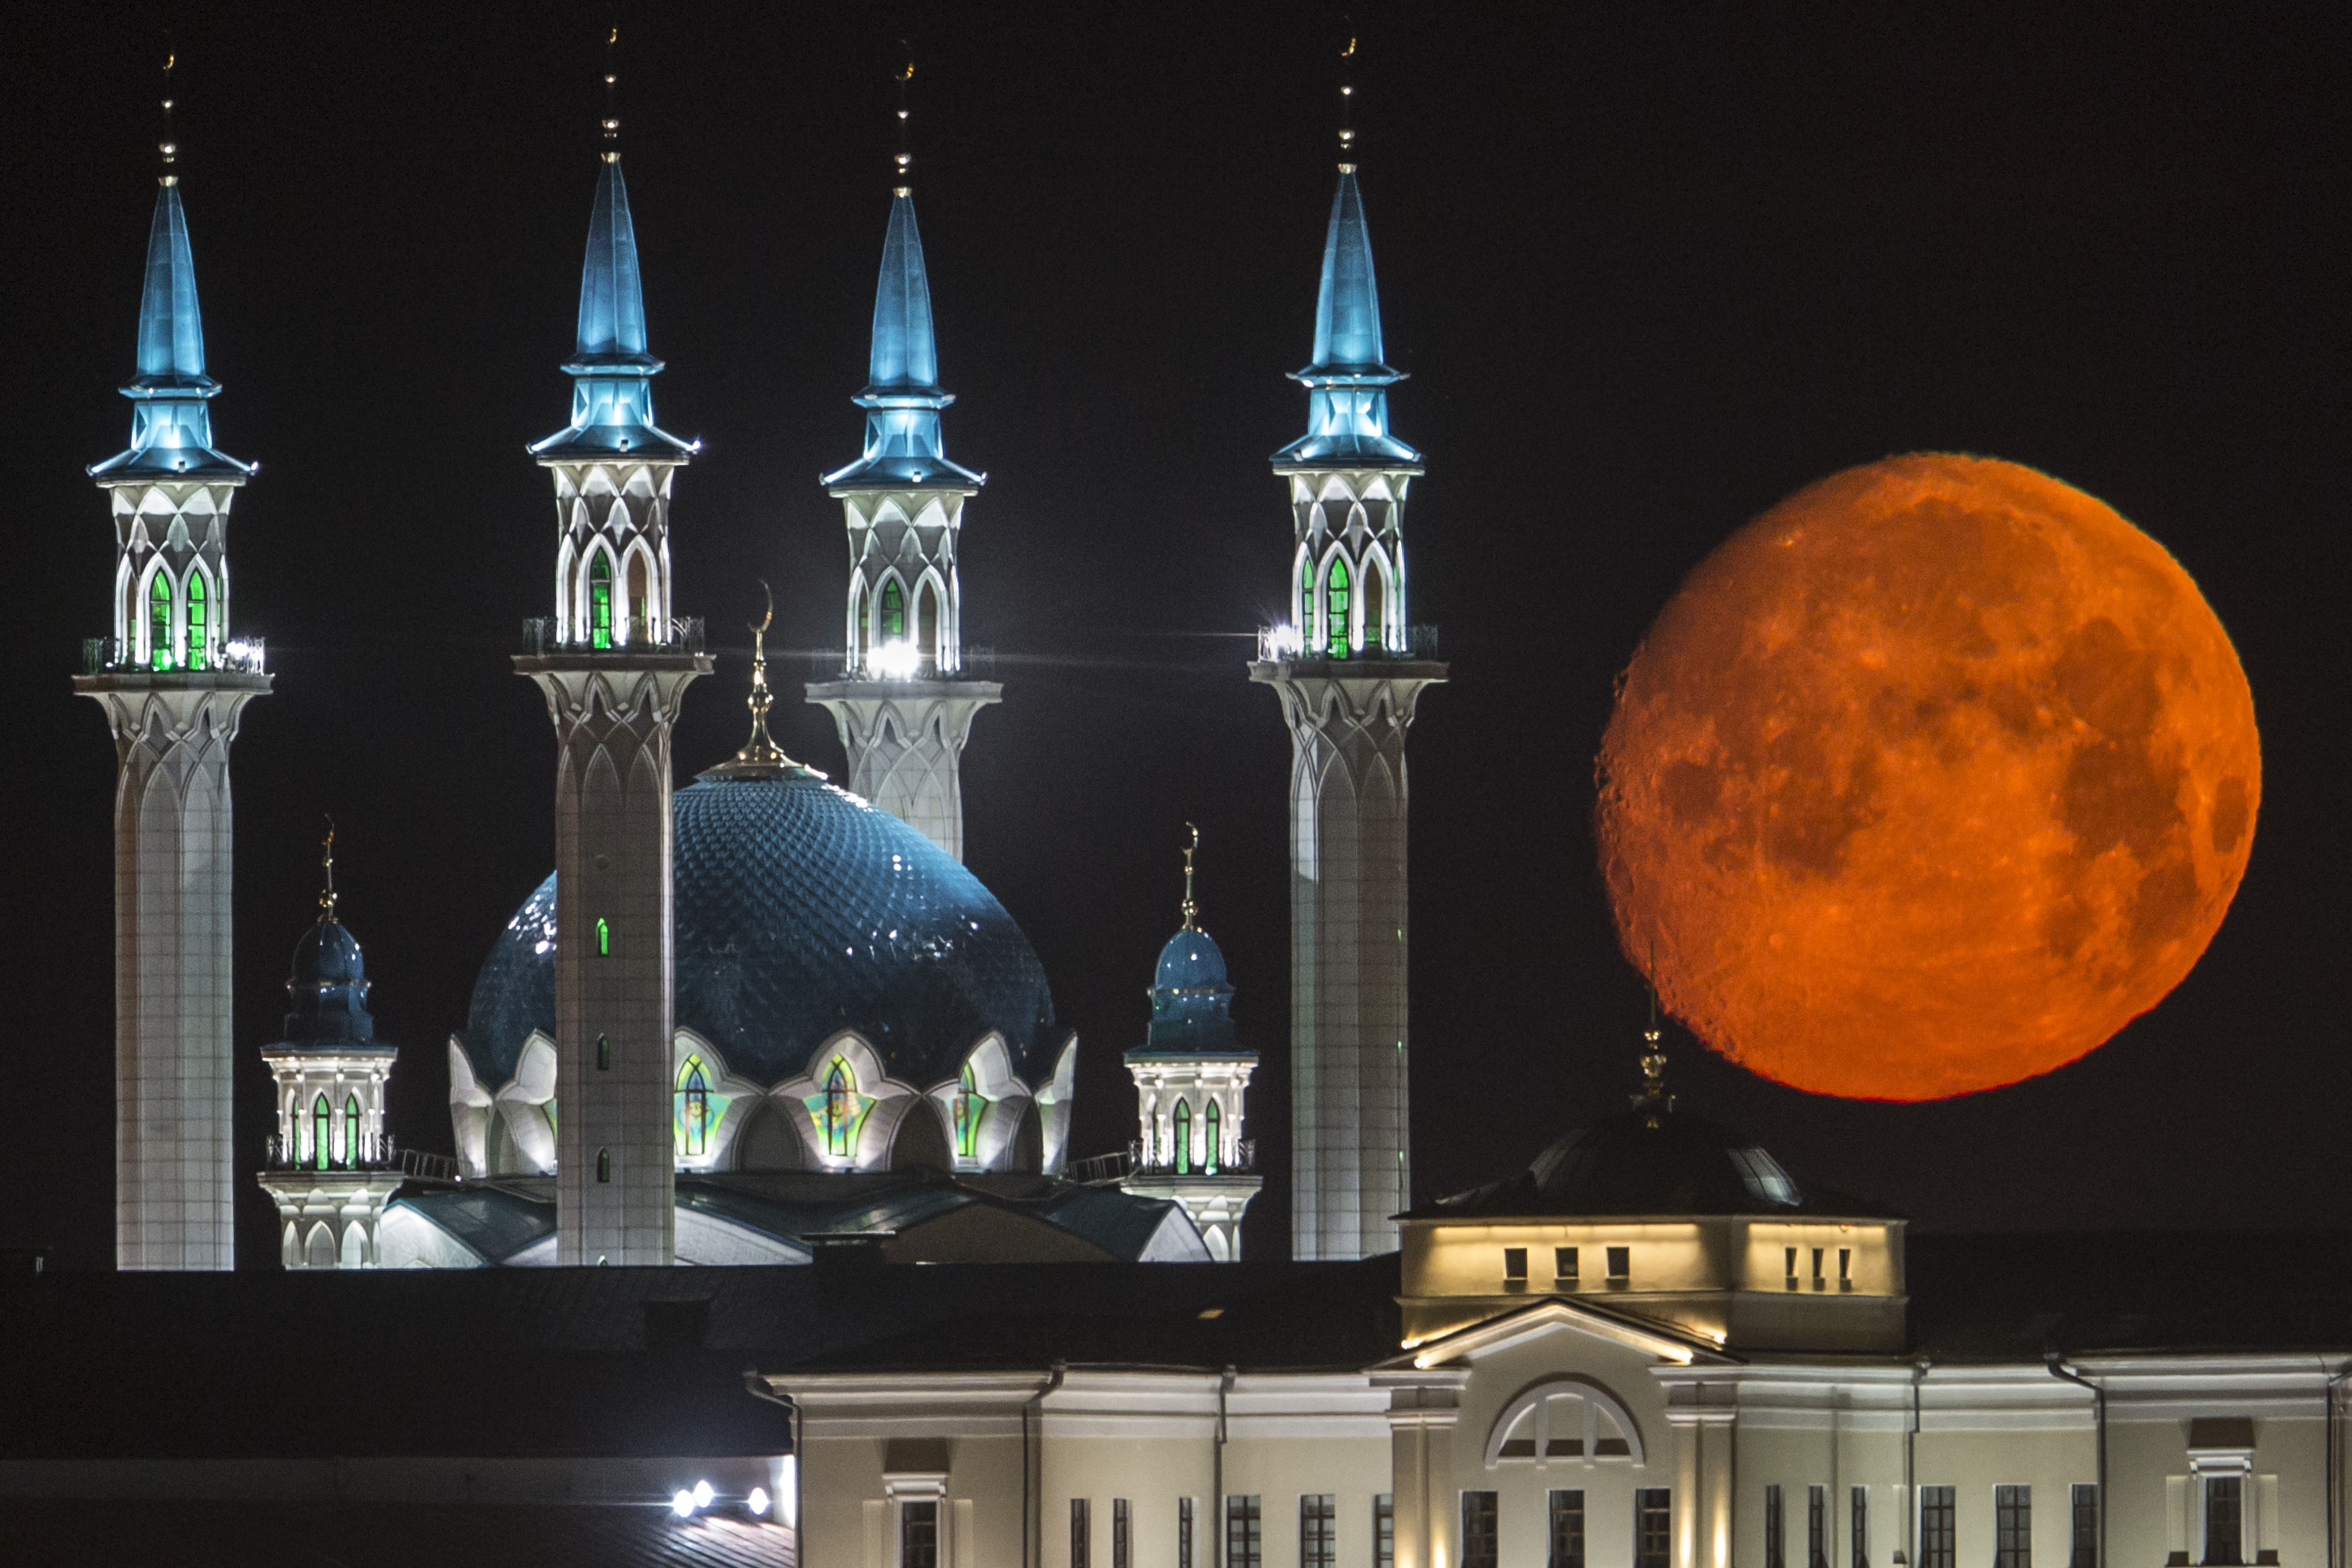 AP10ThingsToSee - The full moon rises over the illuminated Kazan Kremlin with the Qol Sharif mosque illuminated in Kazan, the capital of Tatarstan, located in Russia's Volga River area about 700 km (450 miles) east of Moscow, early Wednesday, July, 29, 2015. (AP Photo/Denis Tyrin)